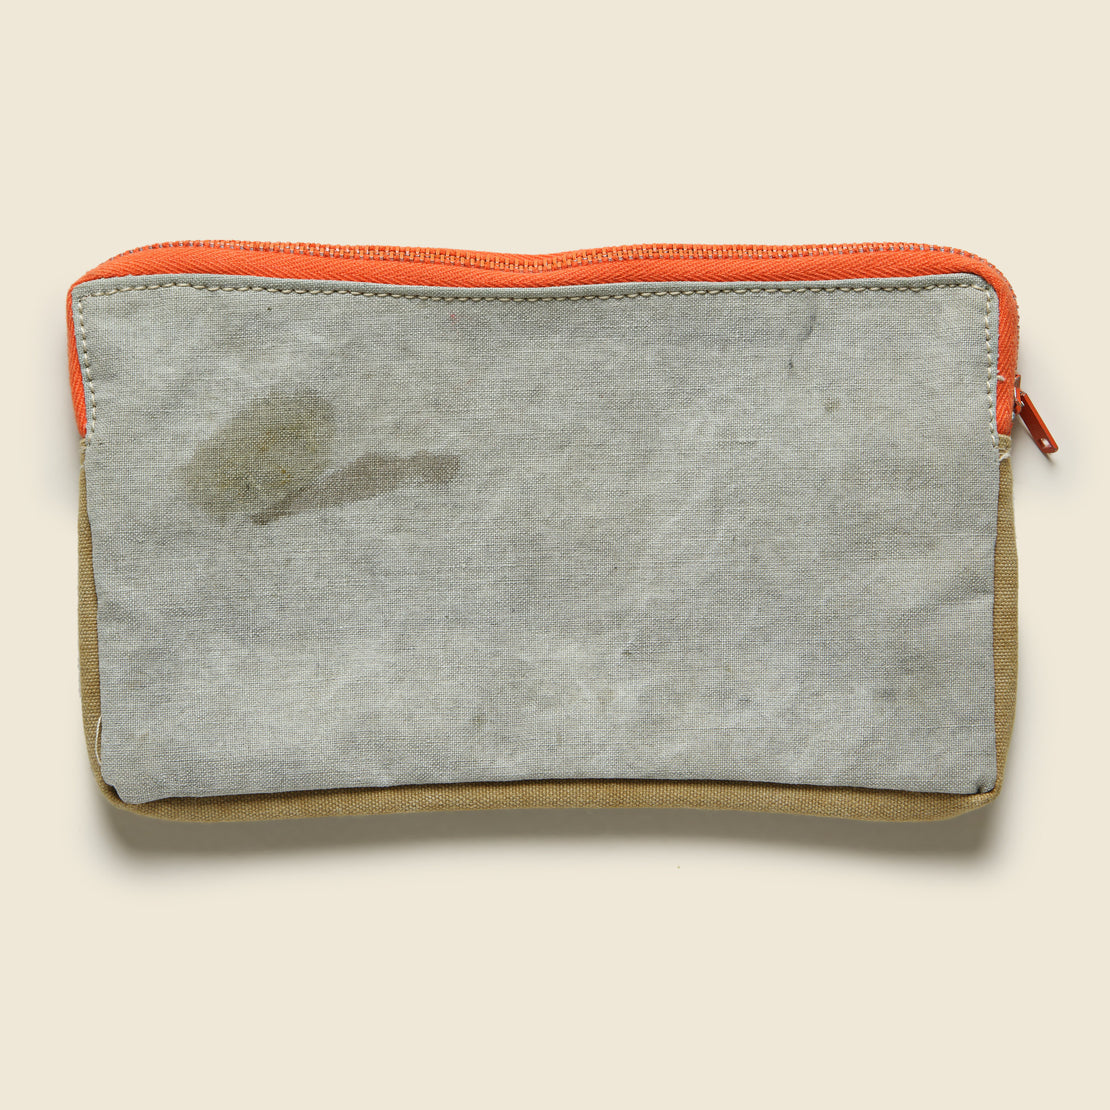 Zipper Pouch - Orange/Brown/Tan